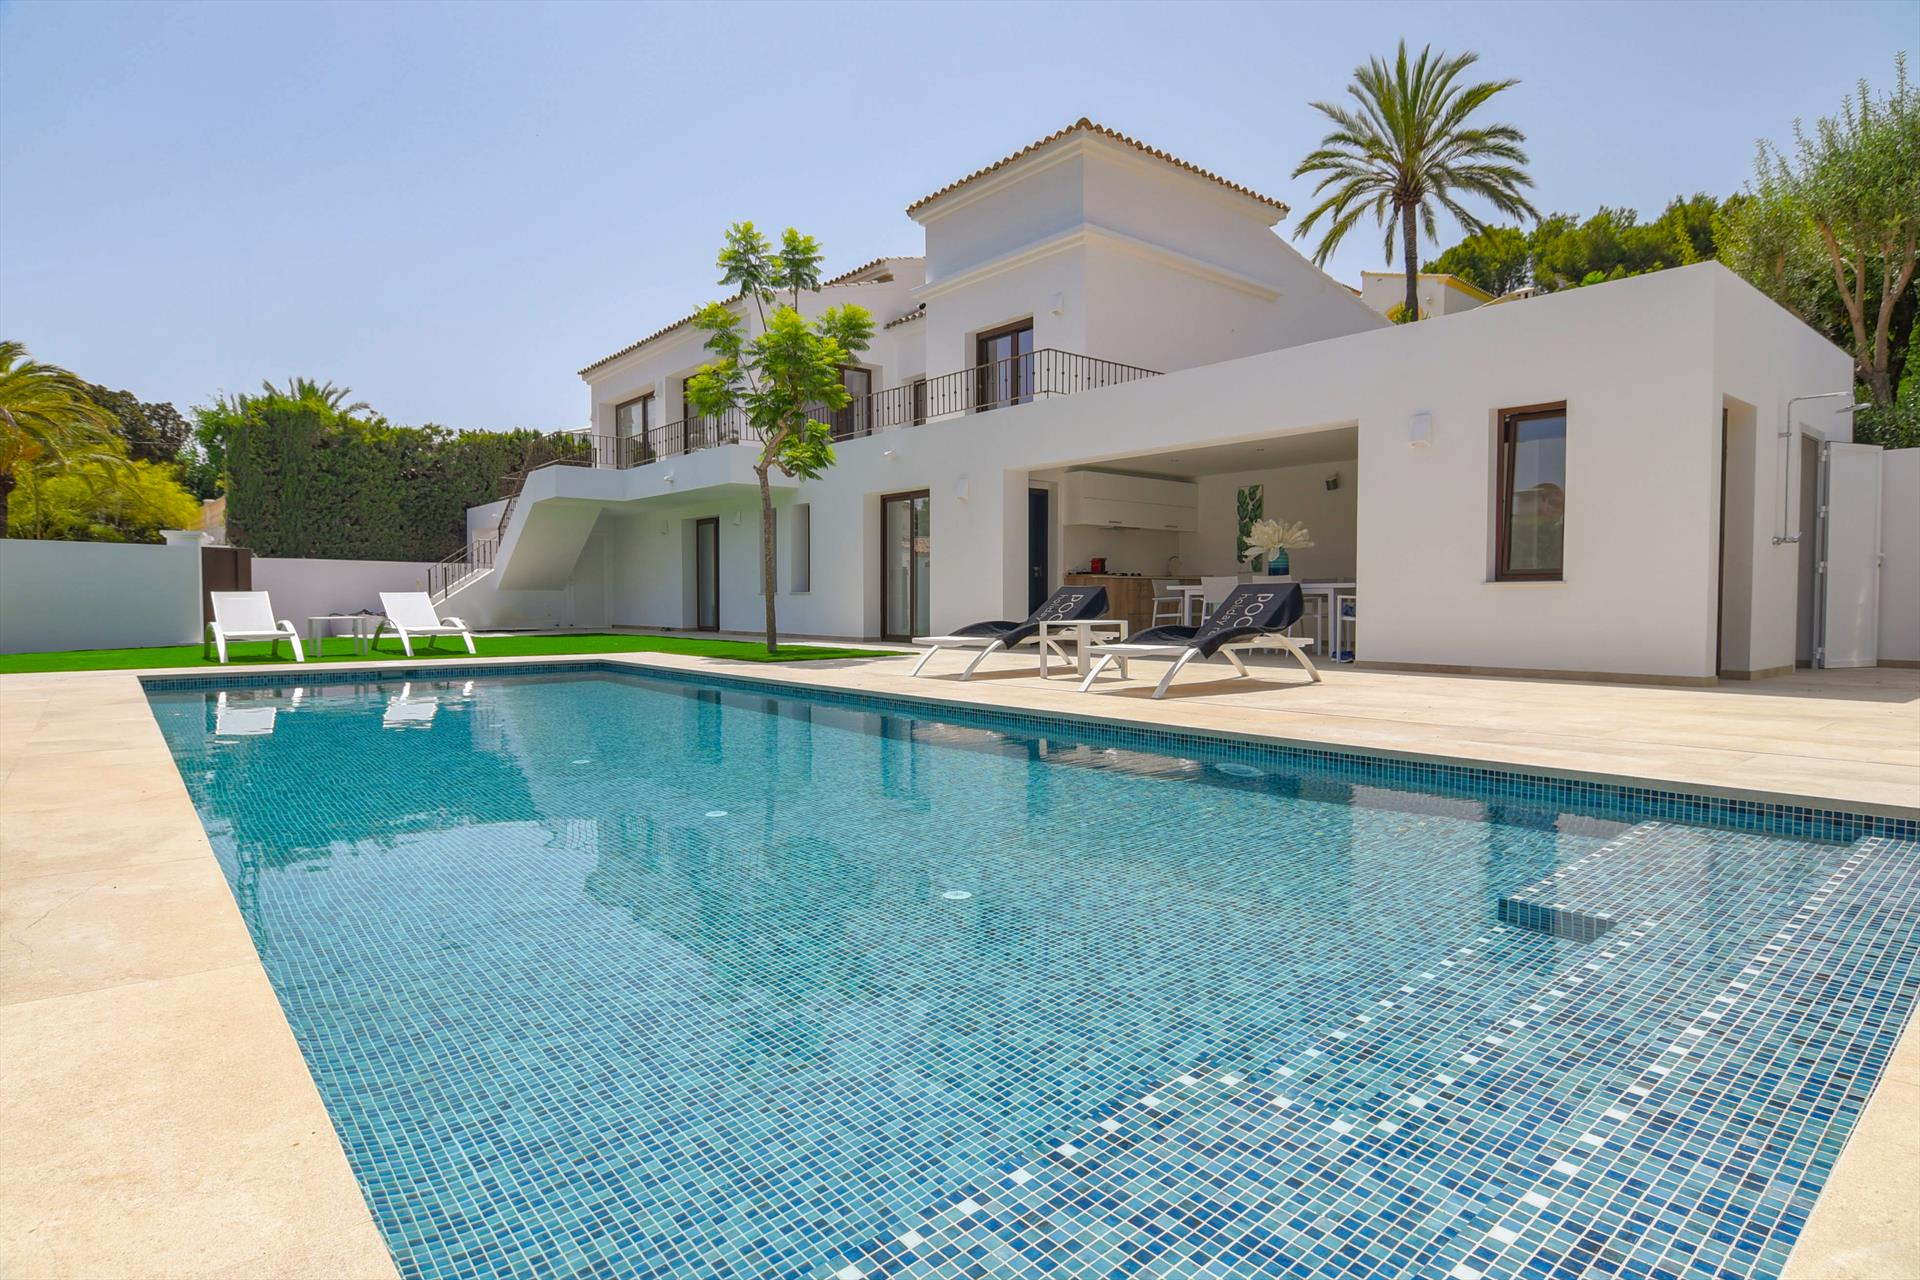 Amipa, Modern and  luxury villa in Moraira, on the Costa Blanca, Spain  with heated pool for 6 persons.....